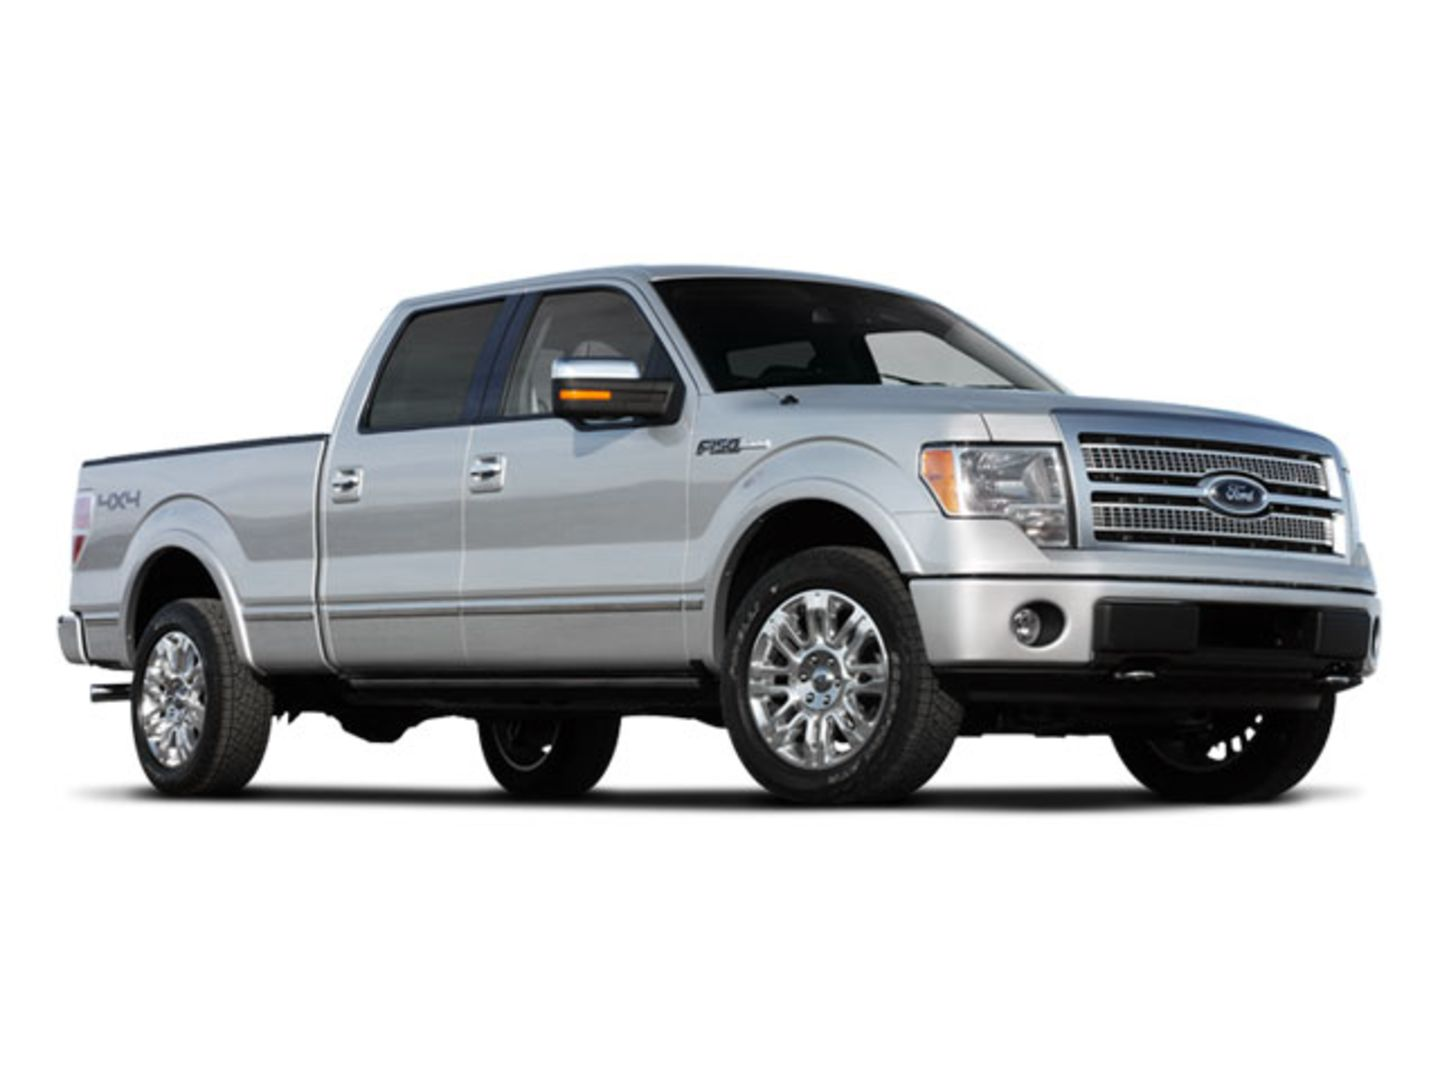 2009 Ford F-150 FX4 for sale in Yellowknife, Northwest Territories